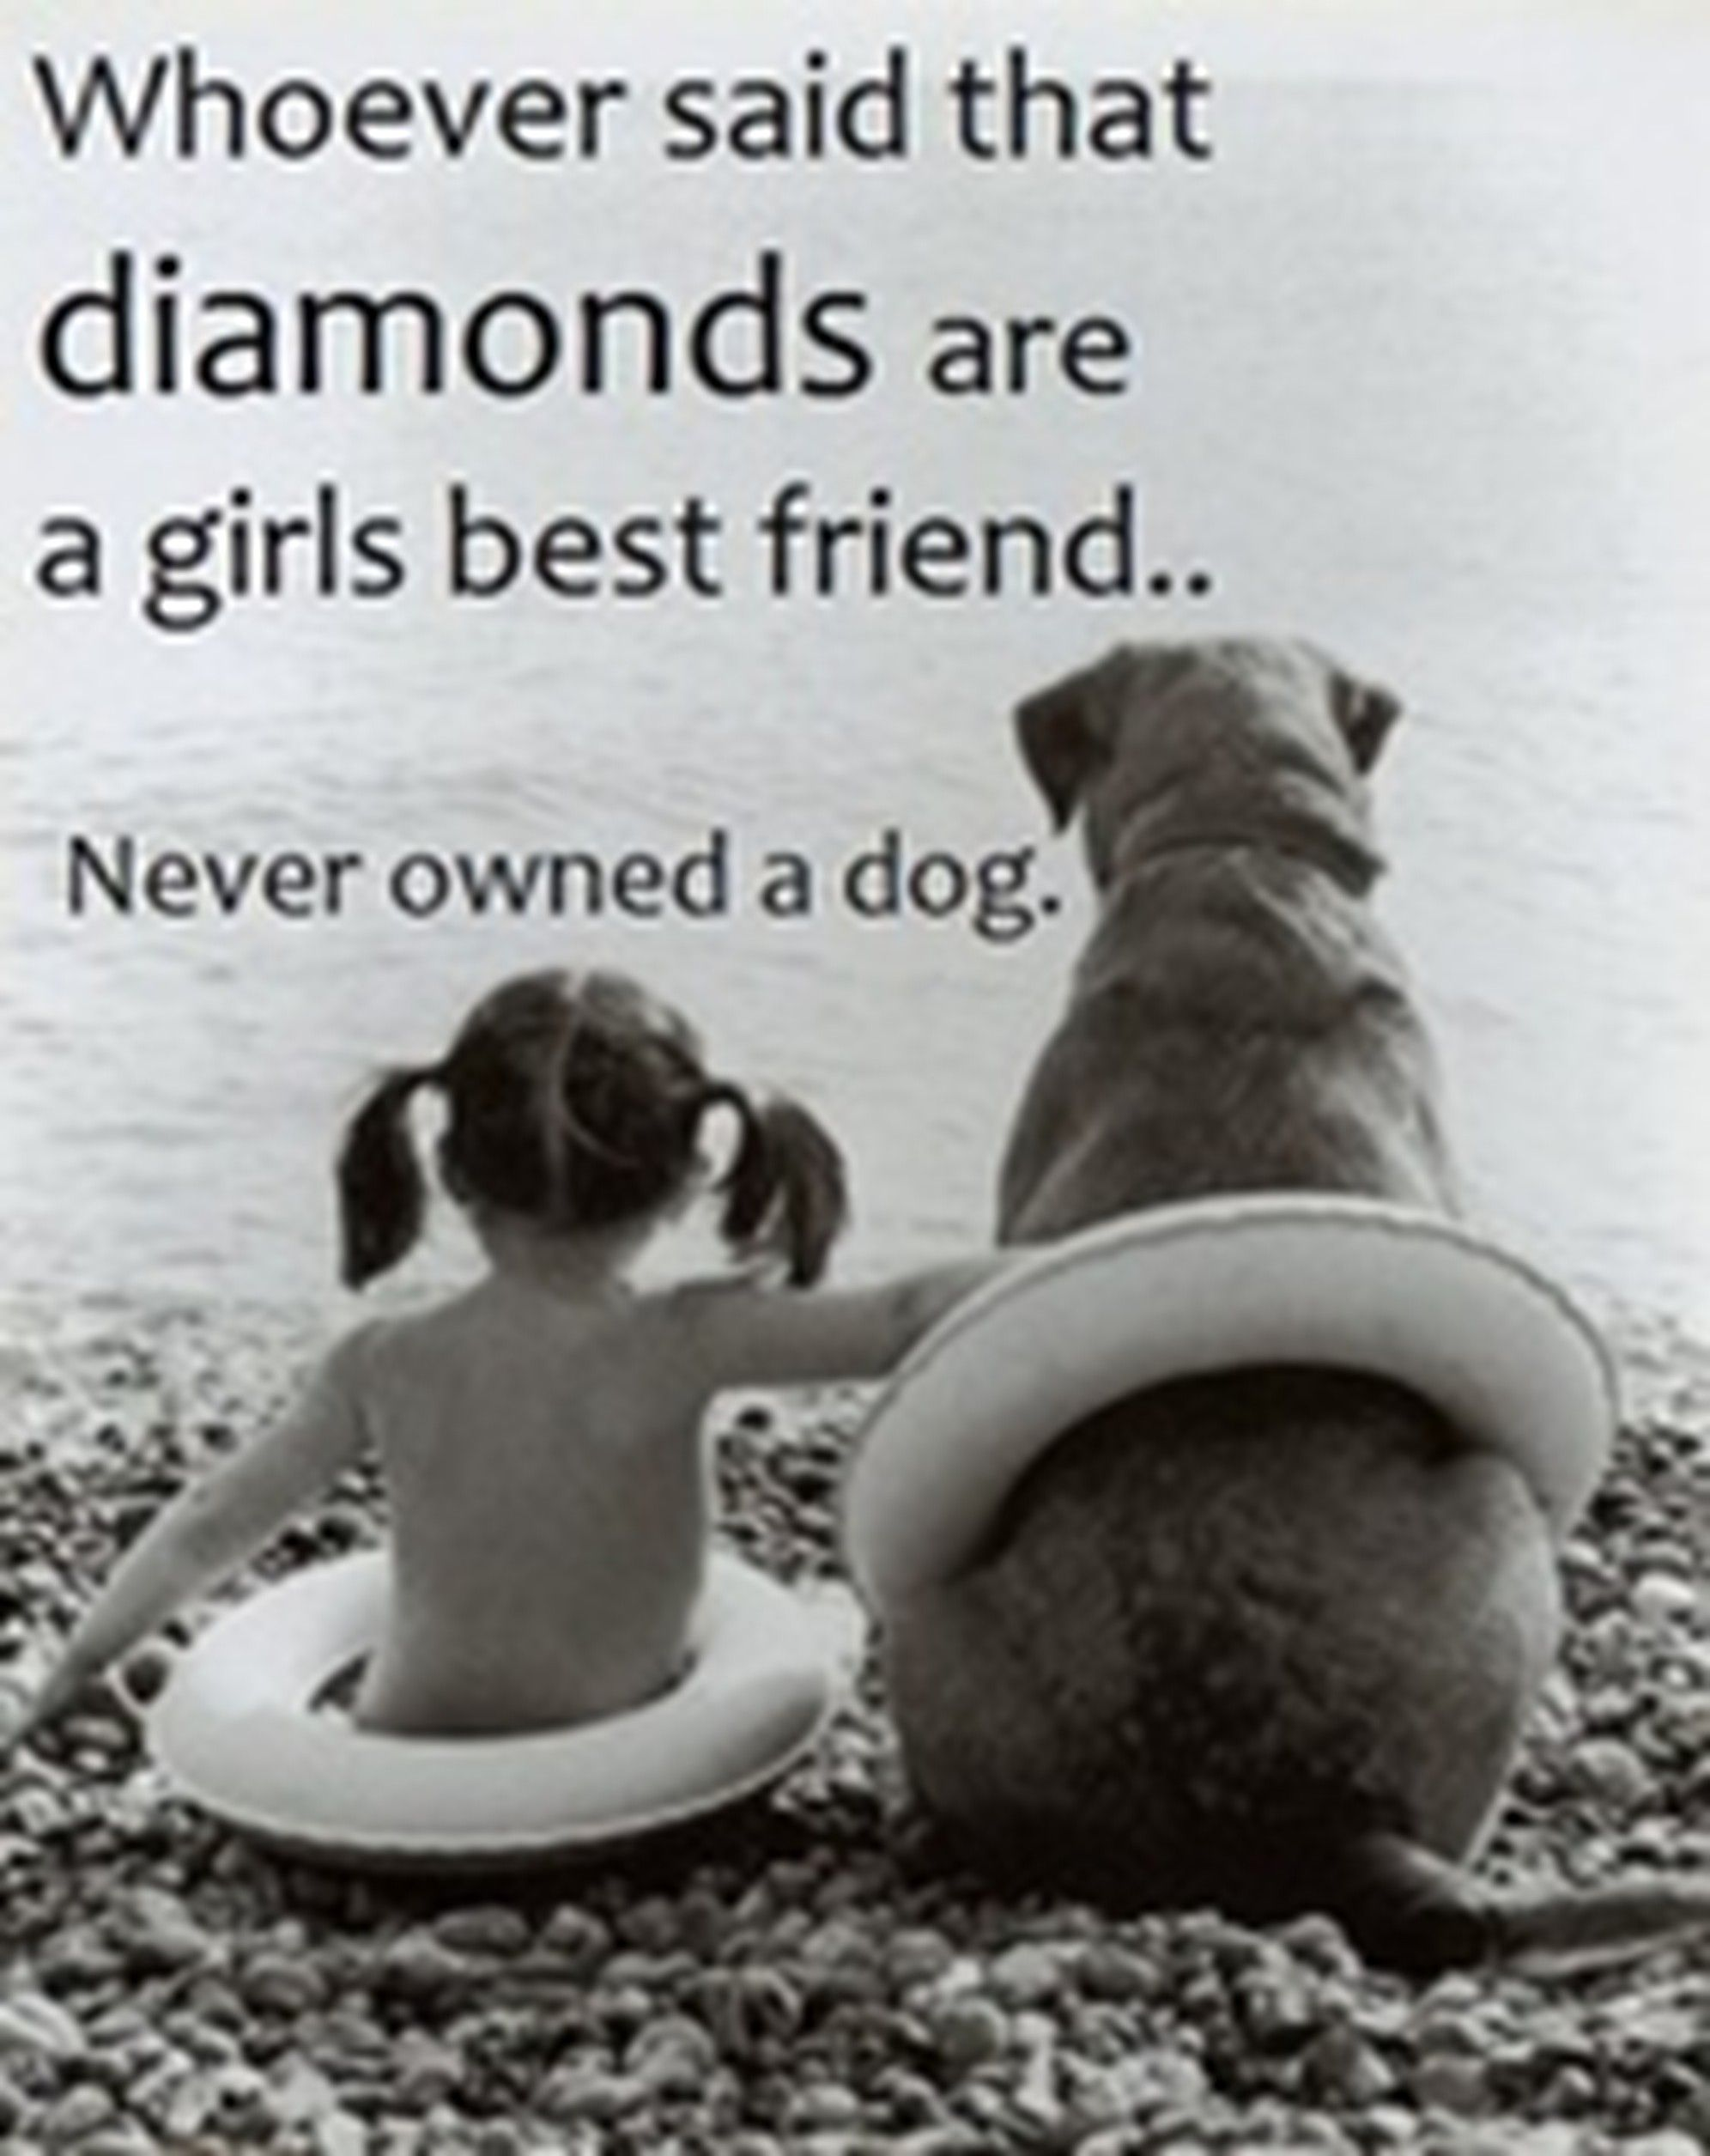 I Love My Dog Quotes Whoever Said Diamonds Are A Girl's Best Friend Never Owned A Dog